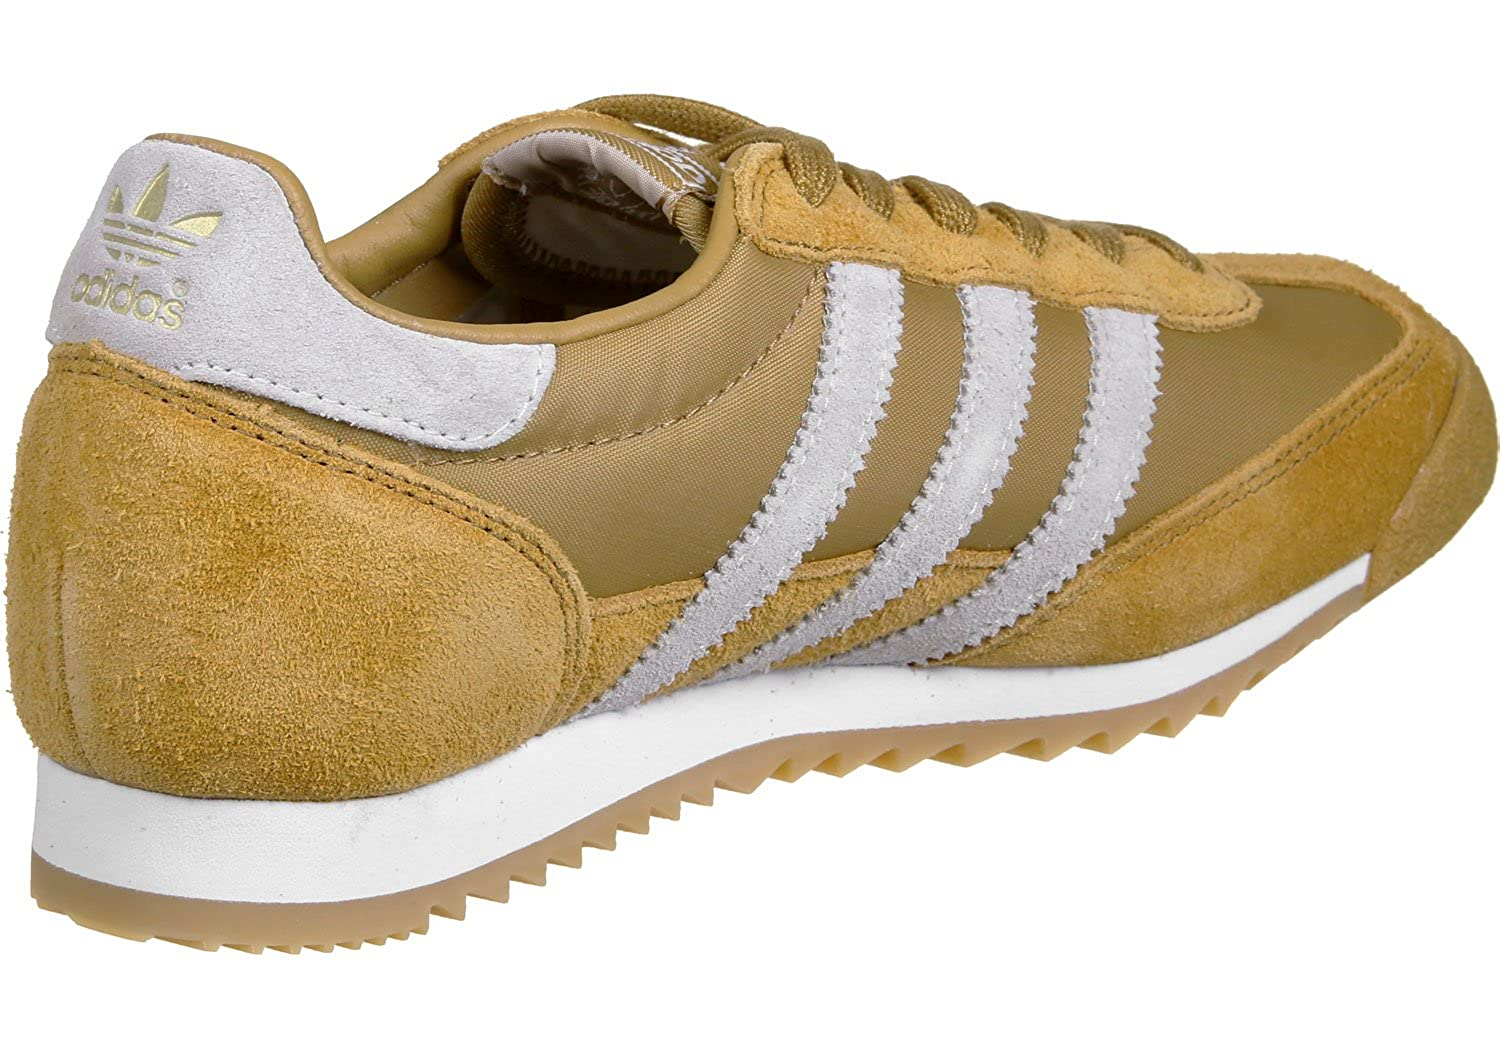 Adidas Dragon OG BB1262 Mens Sneakers / Casual shoes / Trainers Brown:  Amazon.co.uk: Shoes & Bags